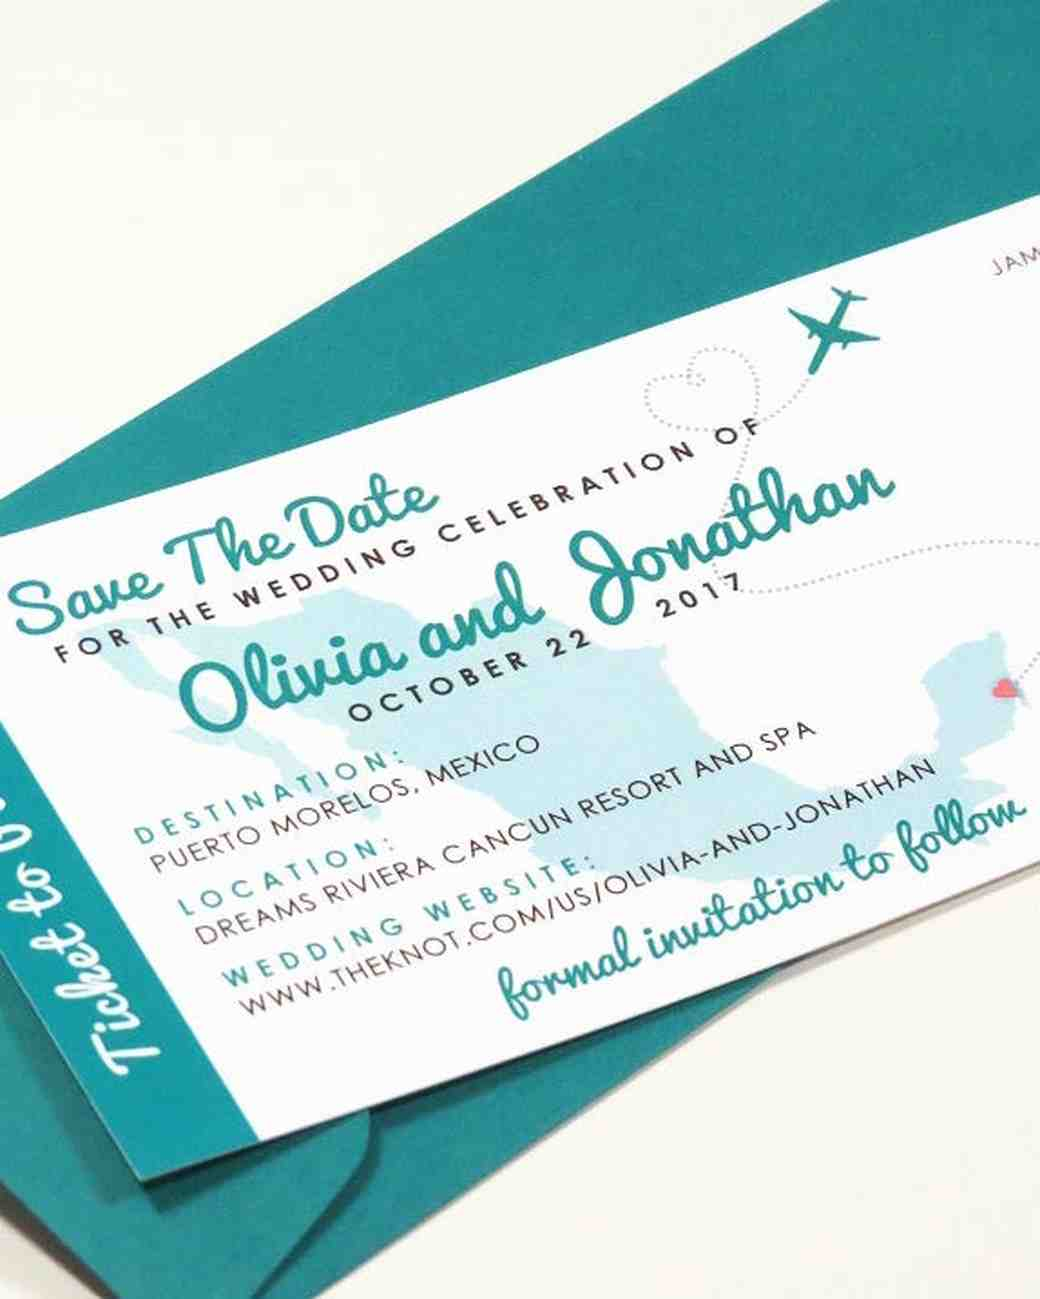 destination-wedding-save-the-date-plane-ticket-0216.jpg